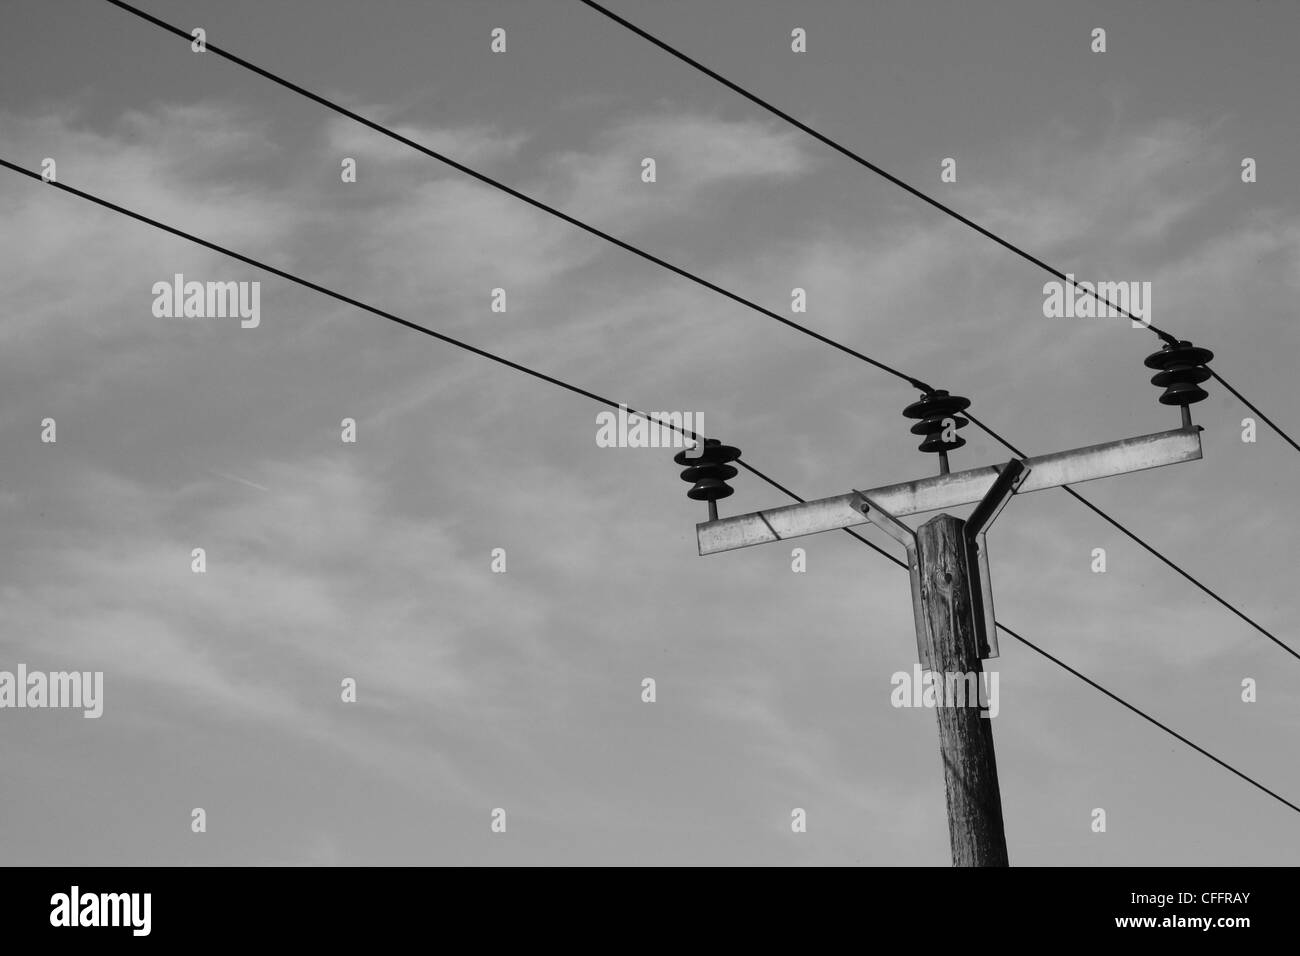 Telegraph Wires Against Sky Stock Photos & Telegraph Wires Against ...